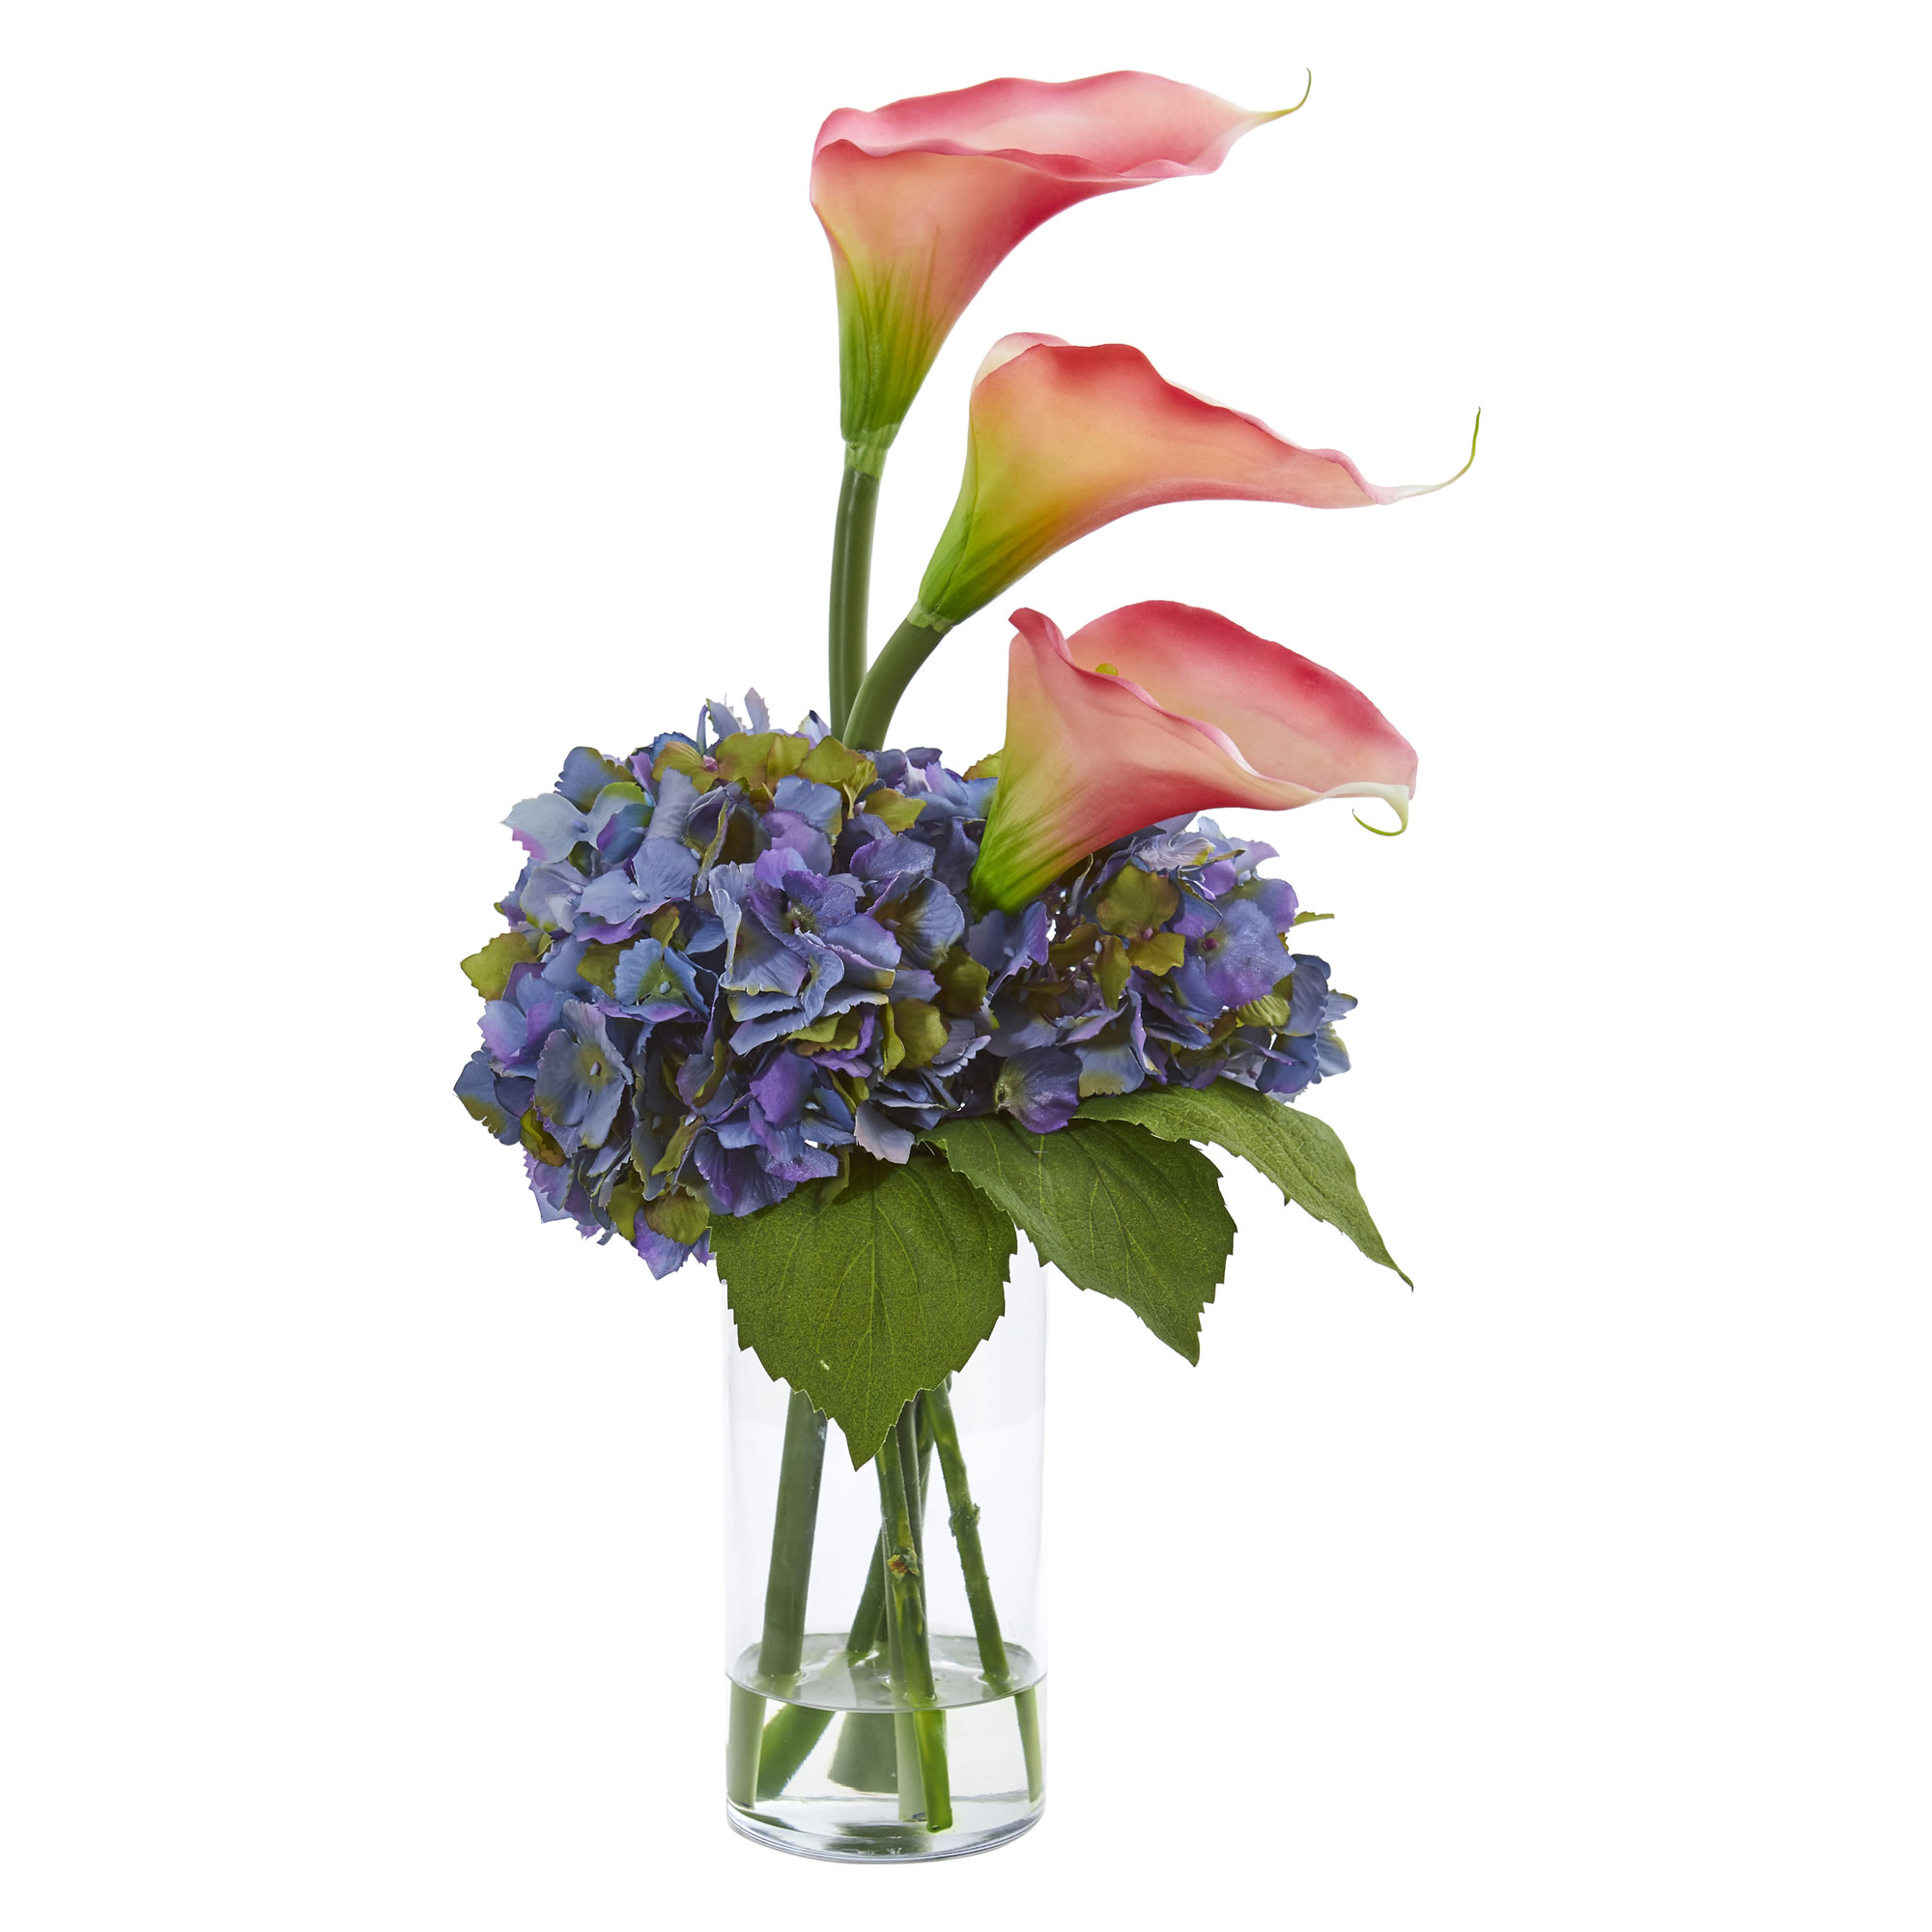 Artificial 18 calla lily hydrangea flowers arrangement in faux image is loading artificial 18 034 calla lily hydrangea flowers arrangement izmirmasajfo